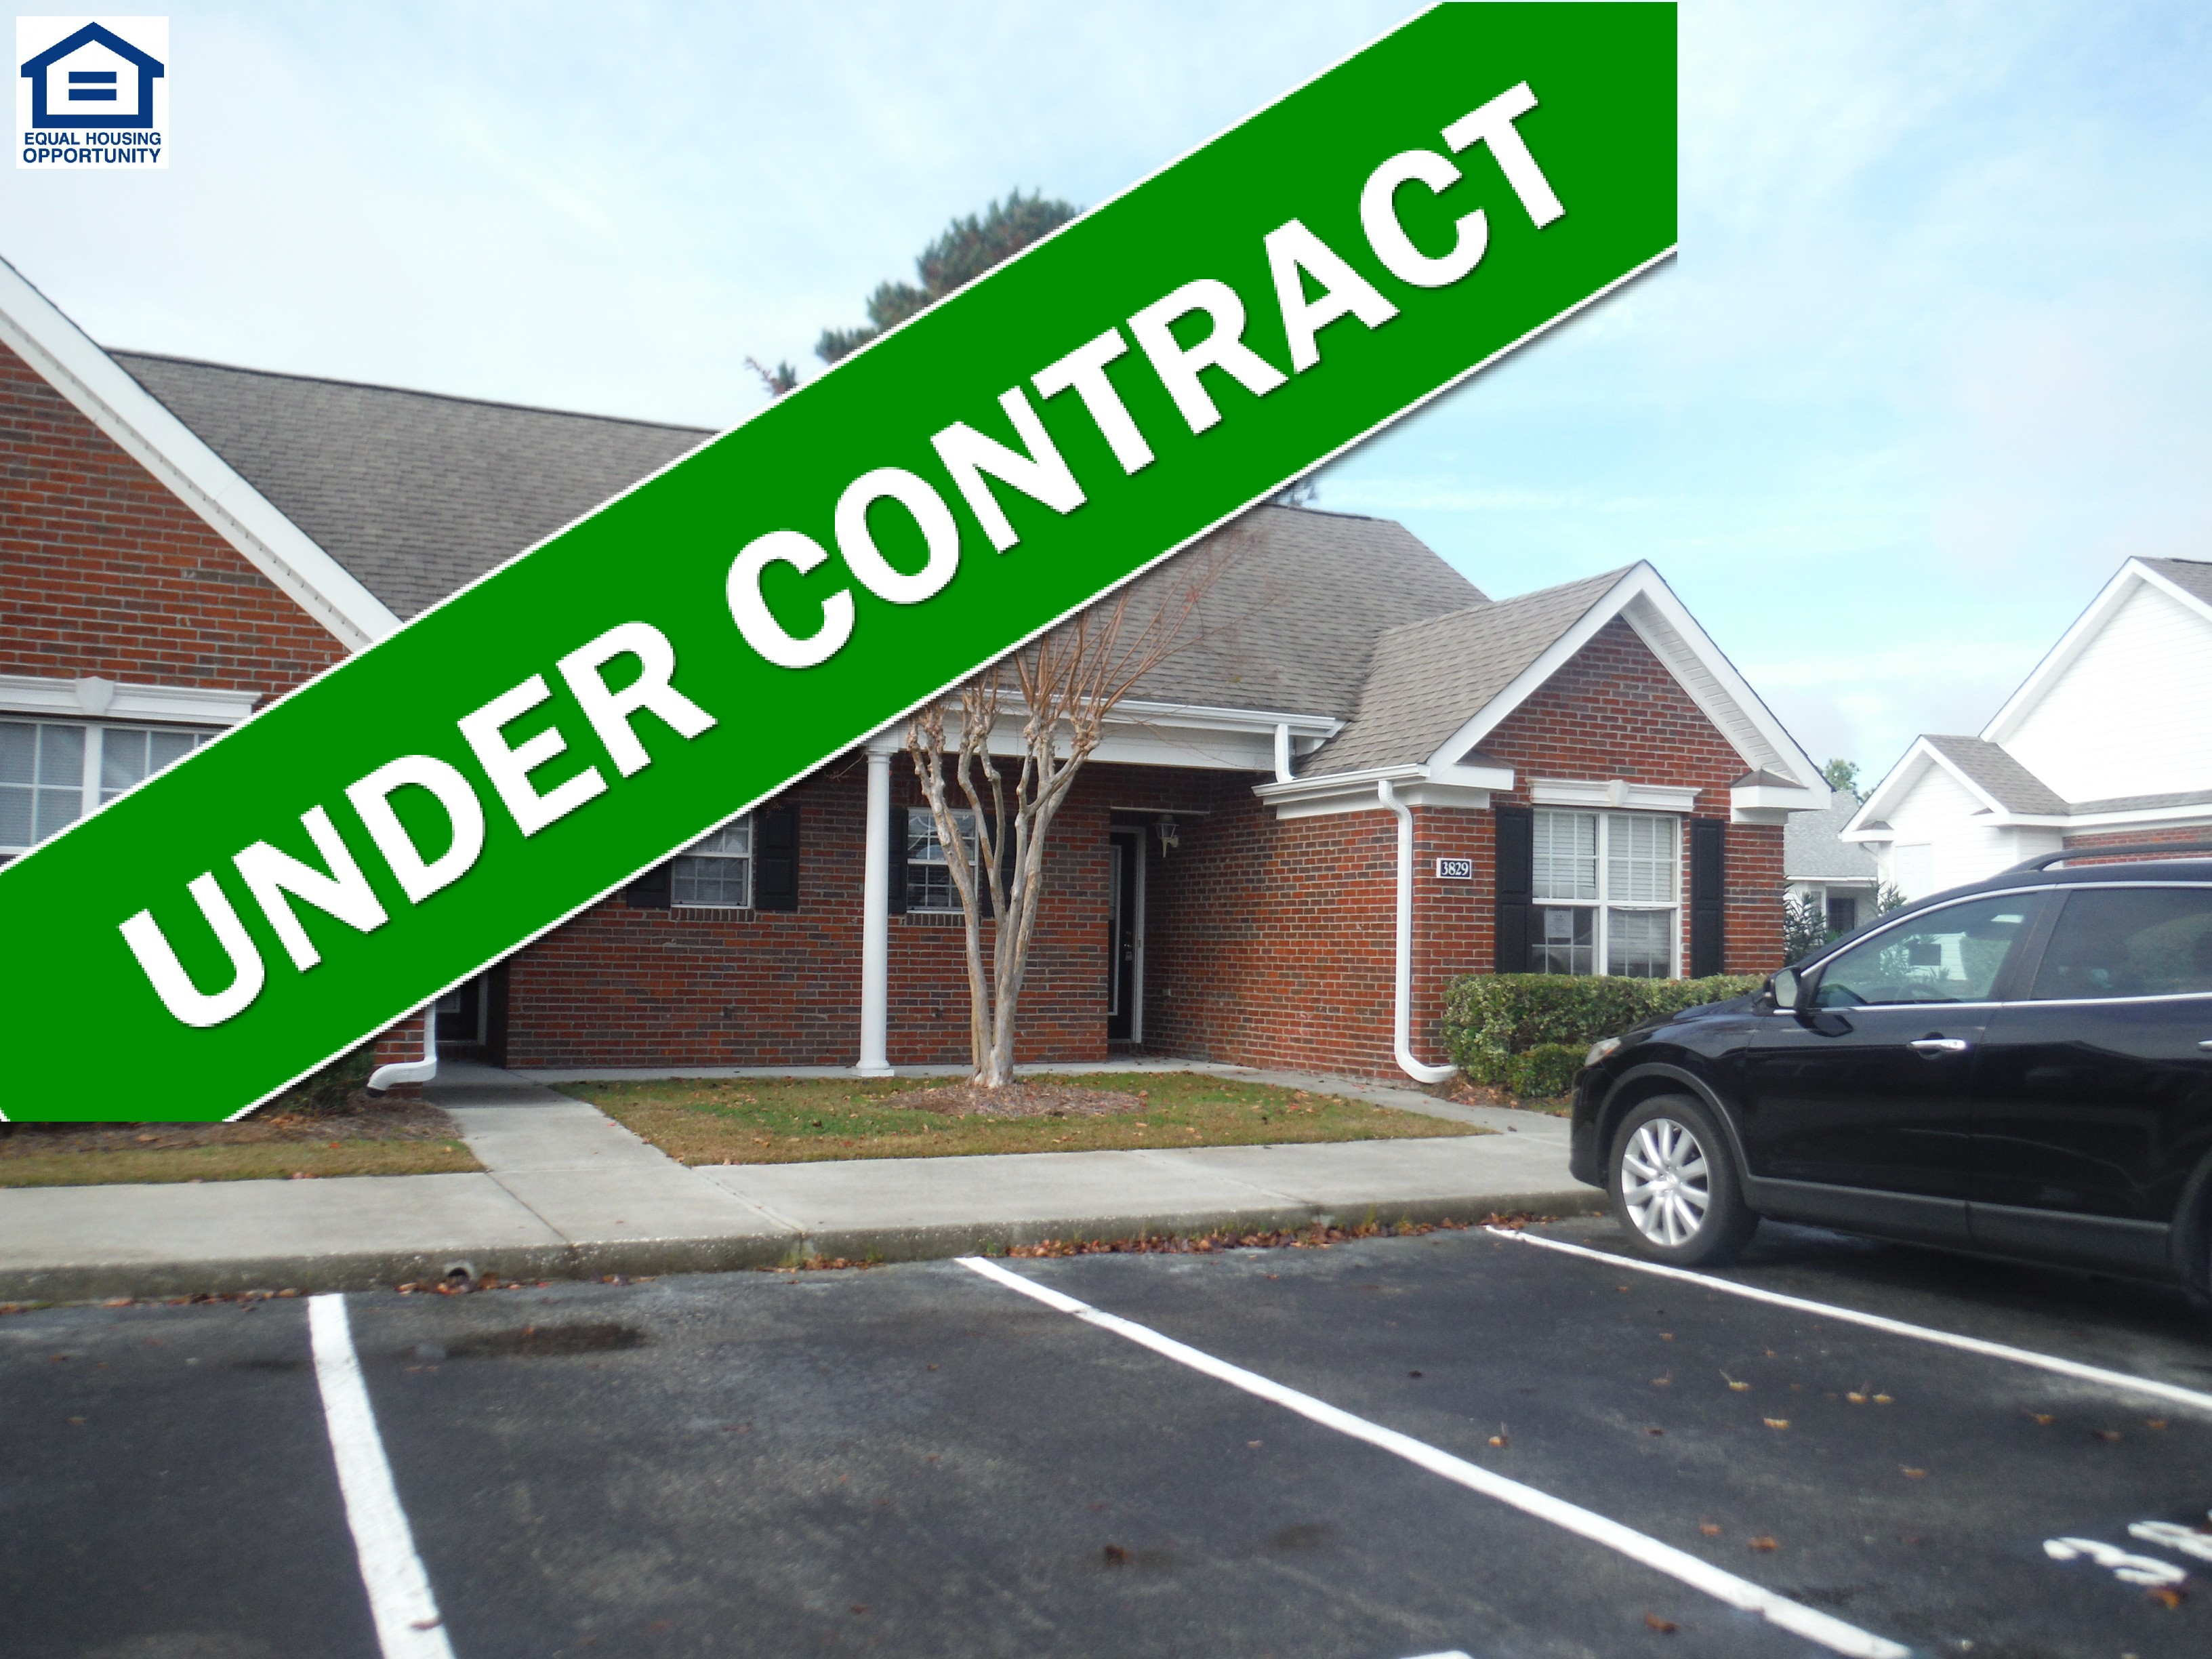 Merestone undercontract